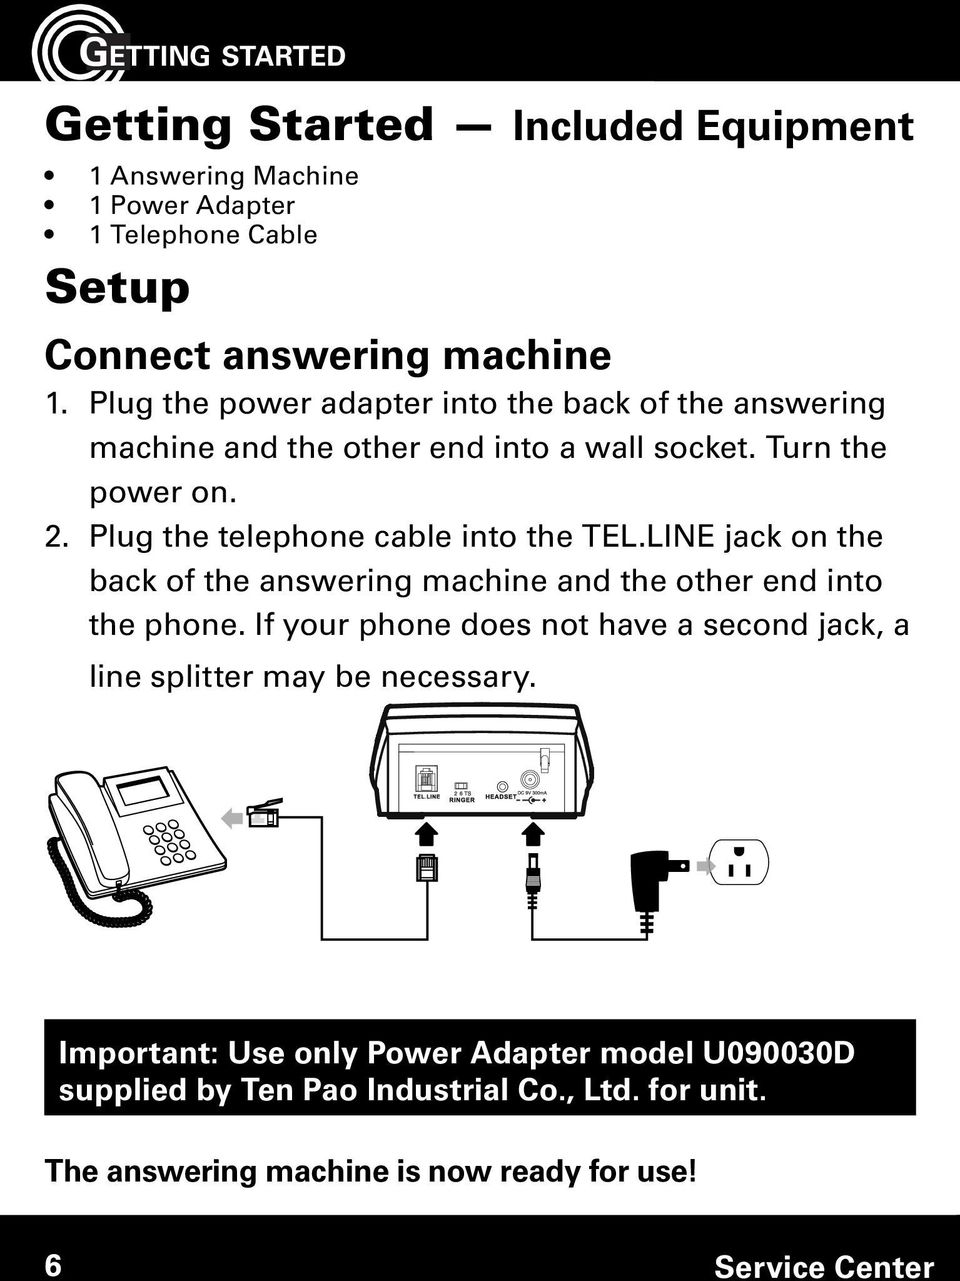 Plug the telephone cable into the TEL.LINE jack on the back of the answering machine and the other end into the phone.